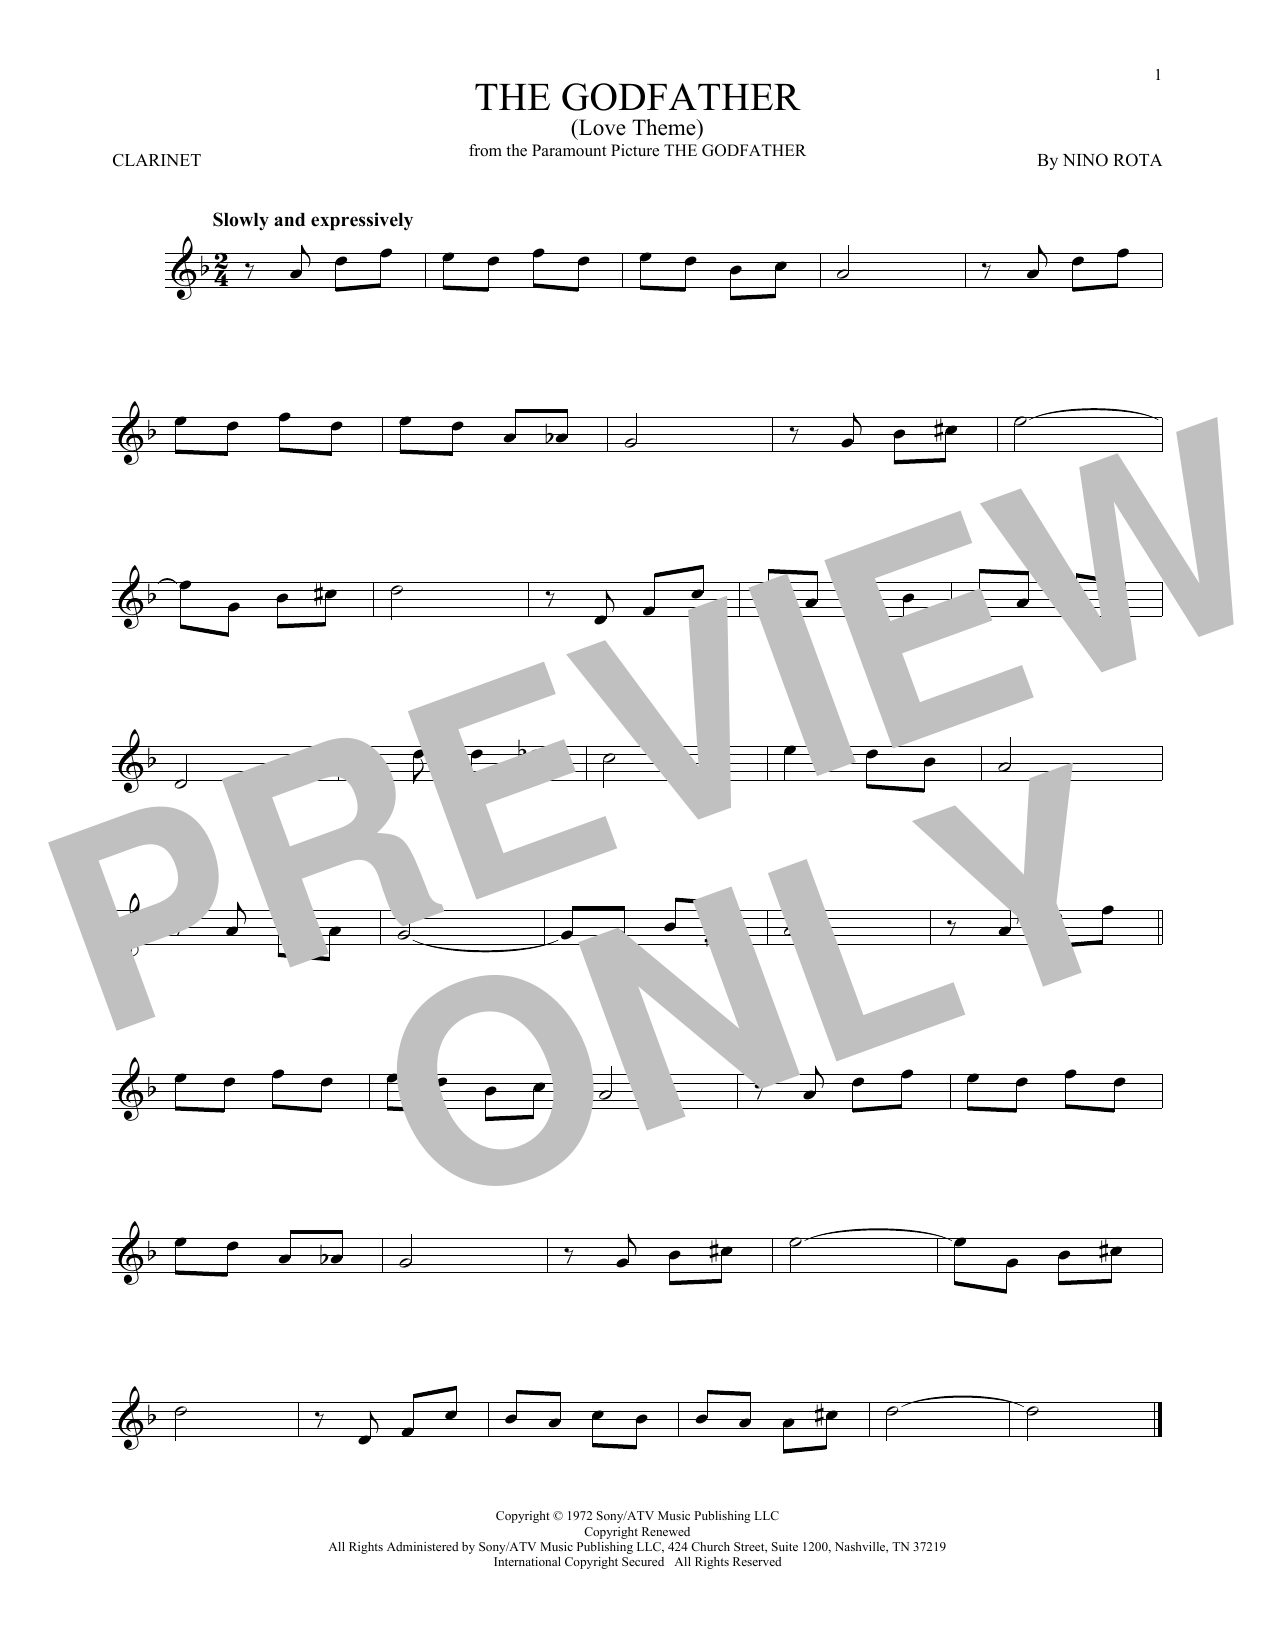 The Godfather (Love Theme) (Clarinet Solo)